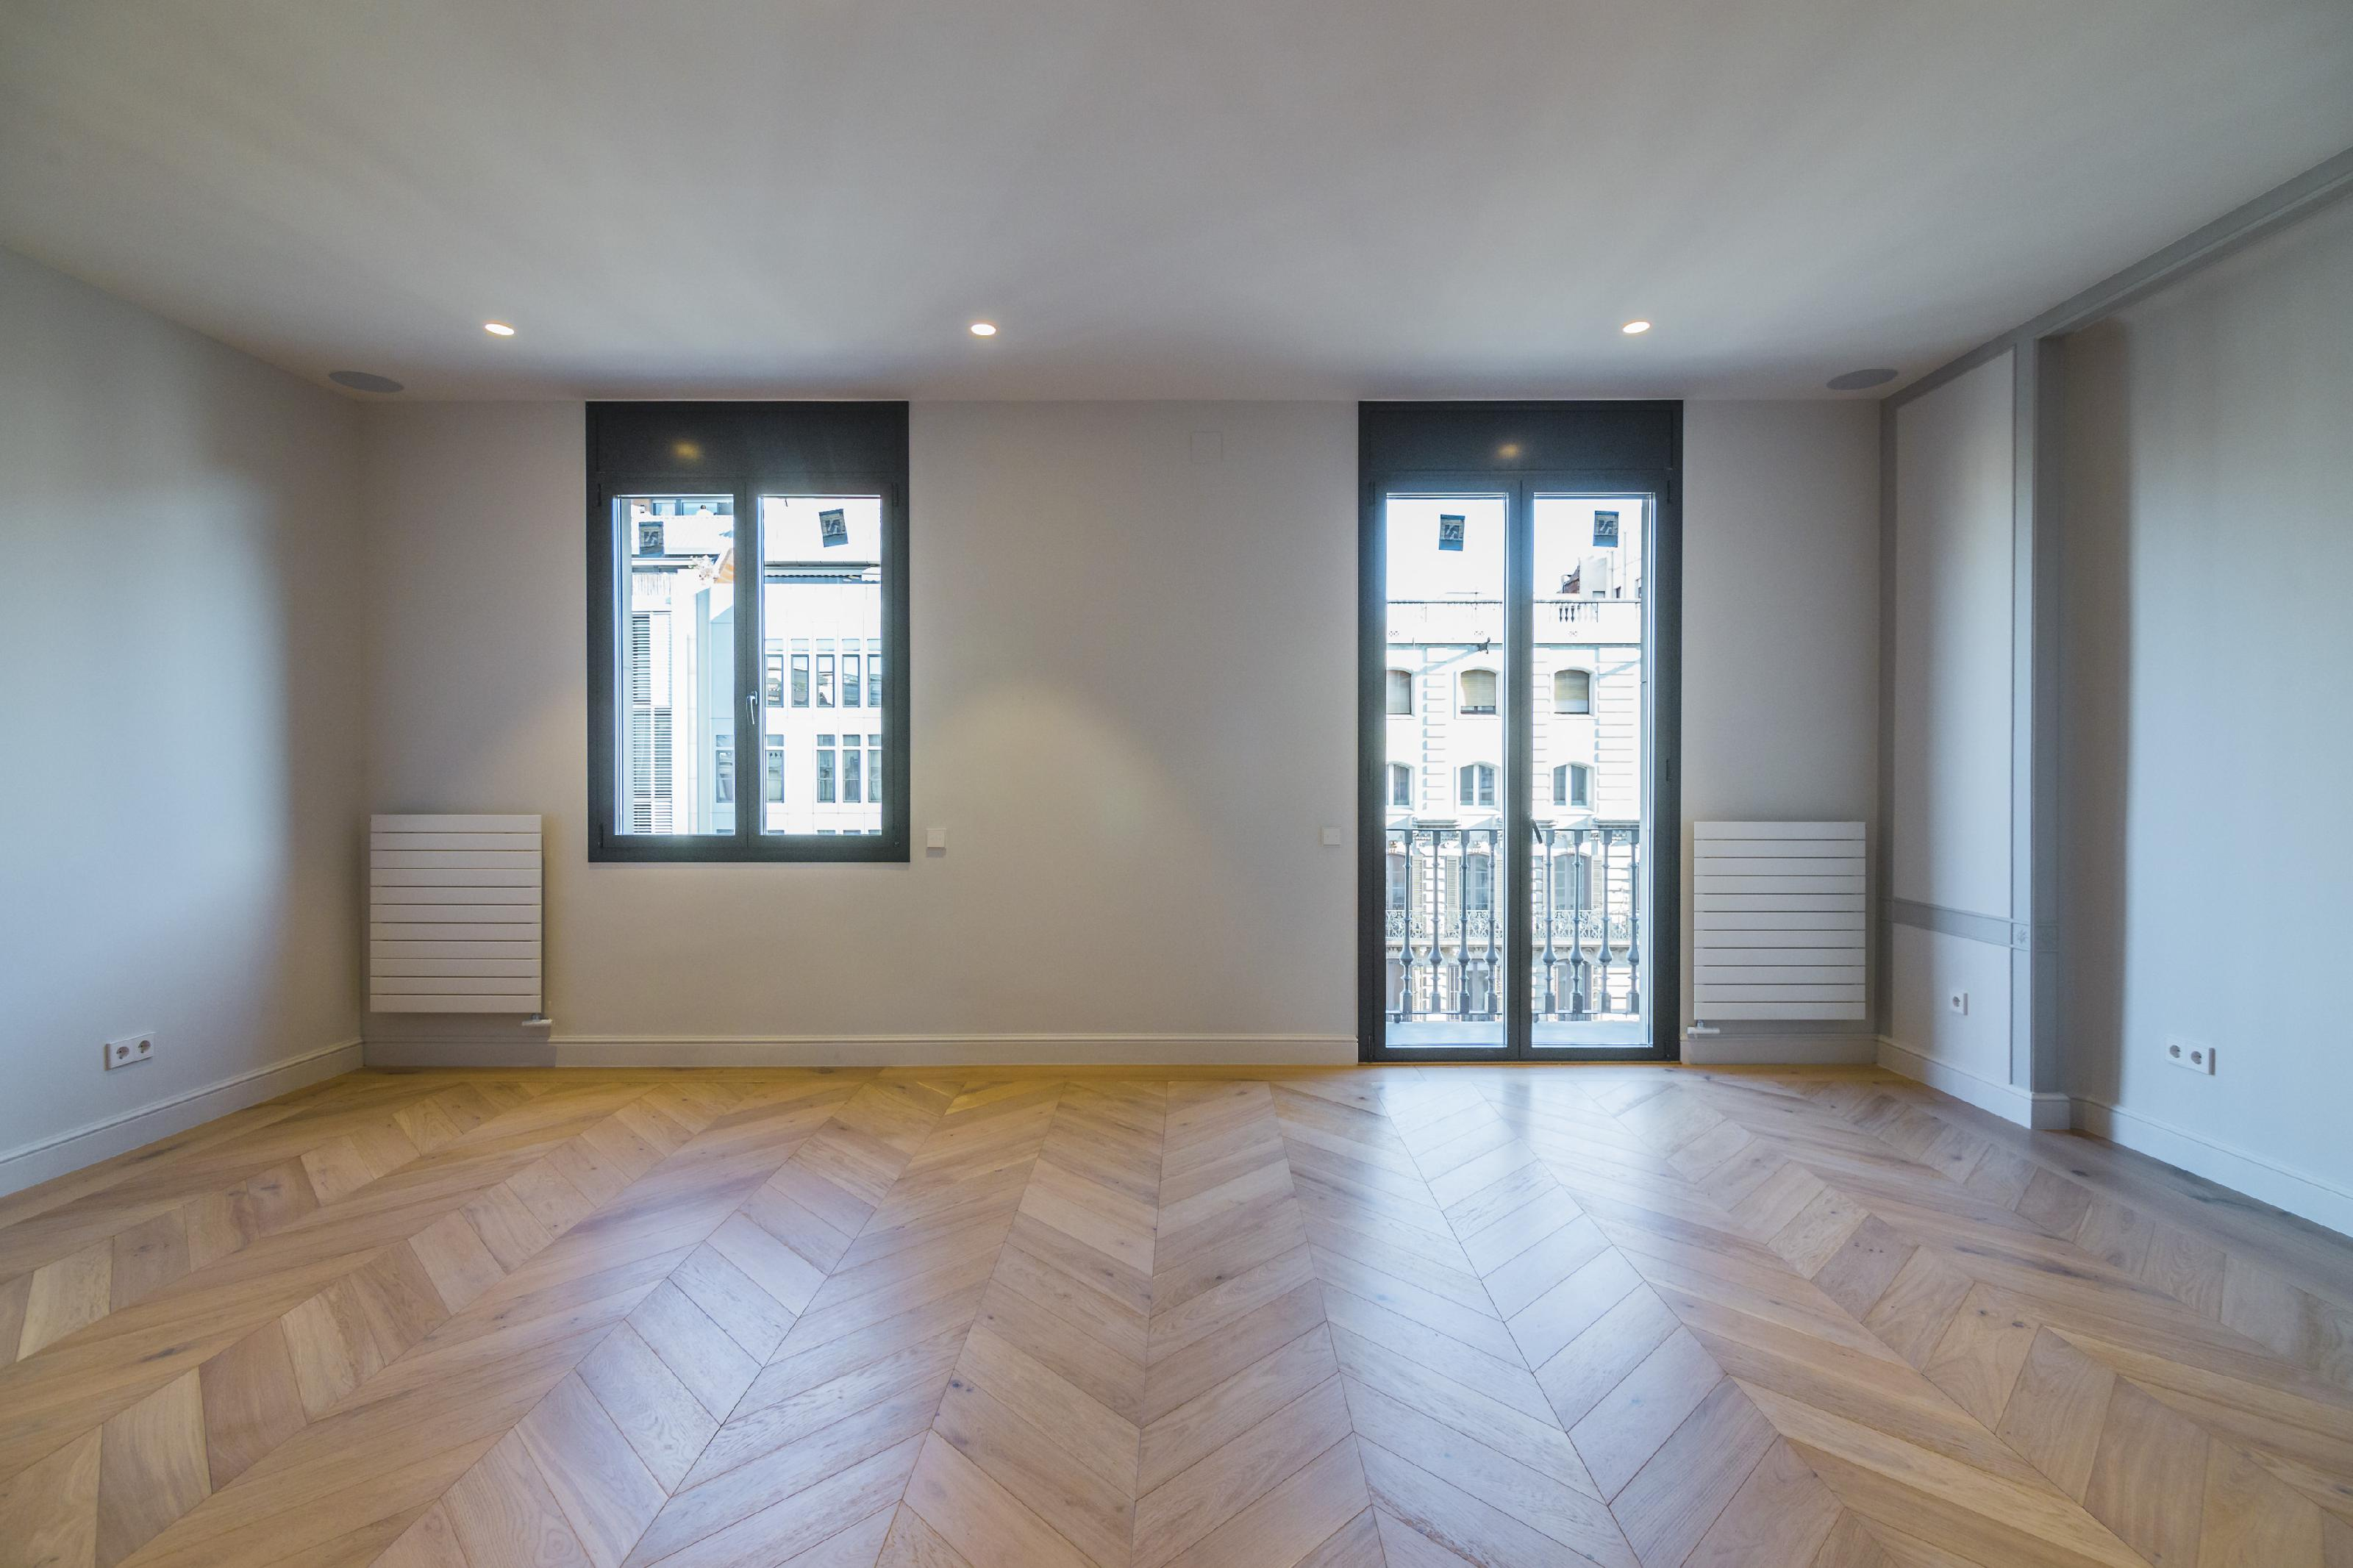 225429 Apartment for sale in Eixample, Dreta Eixample 3